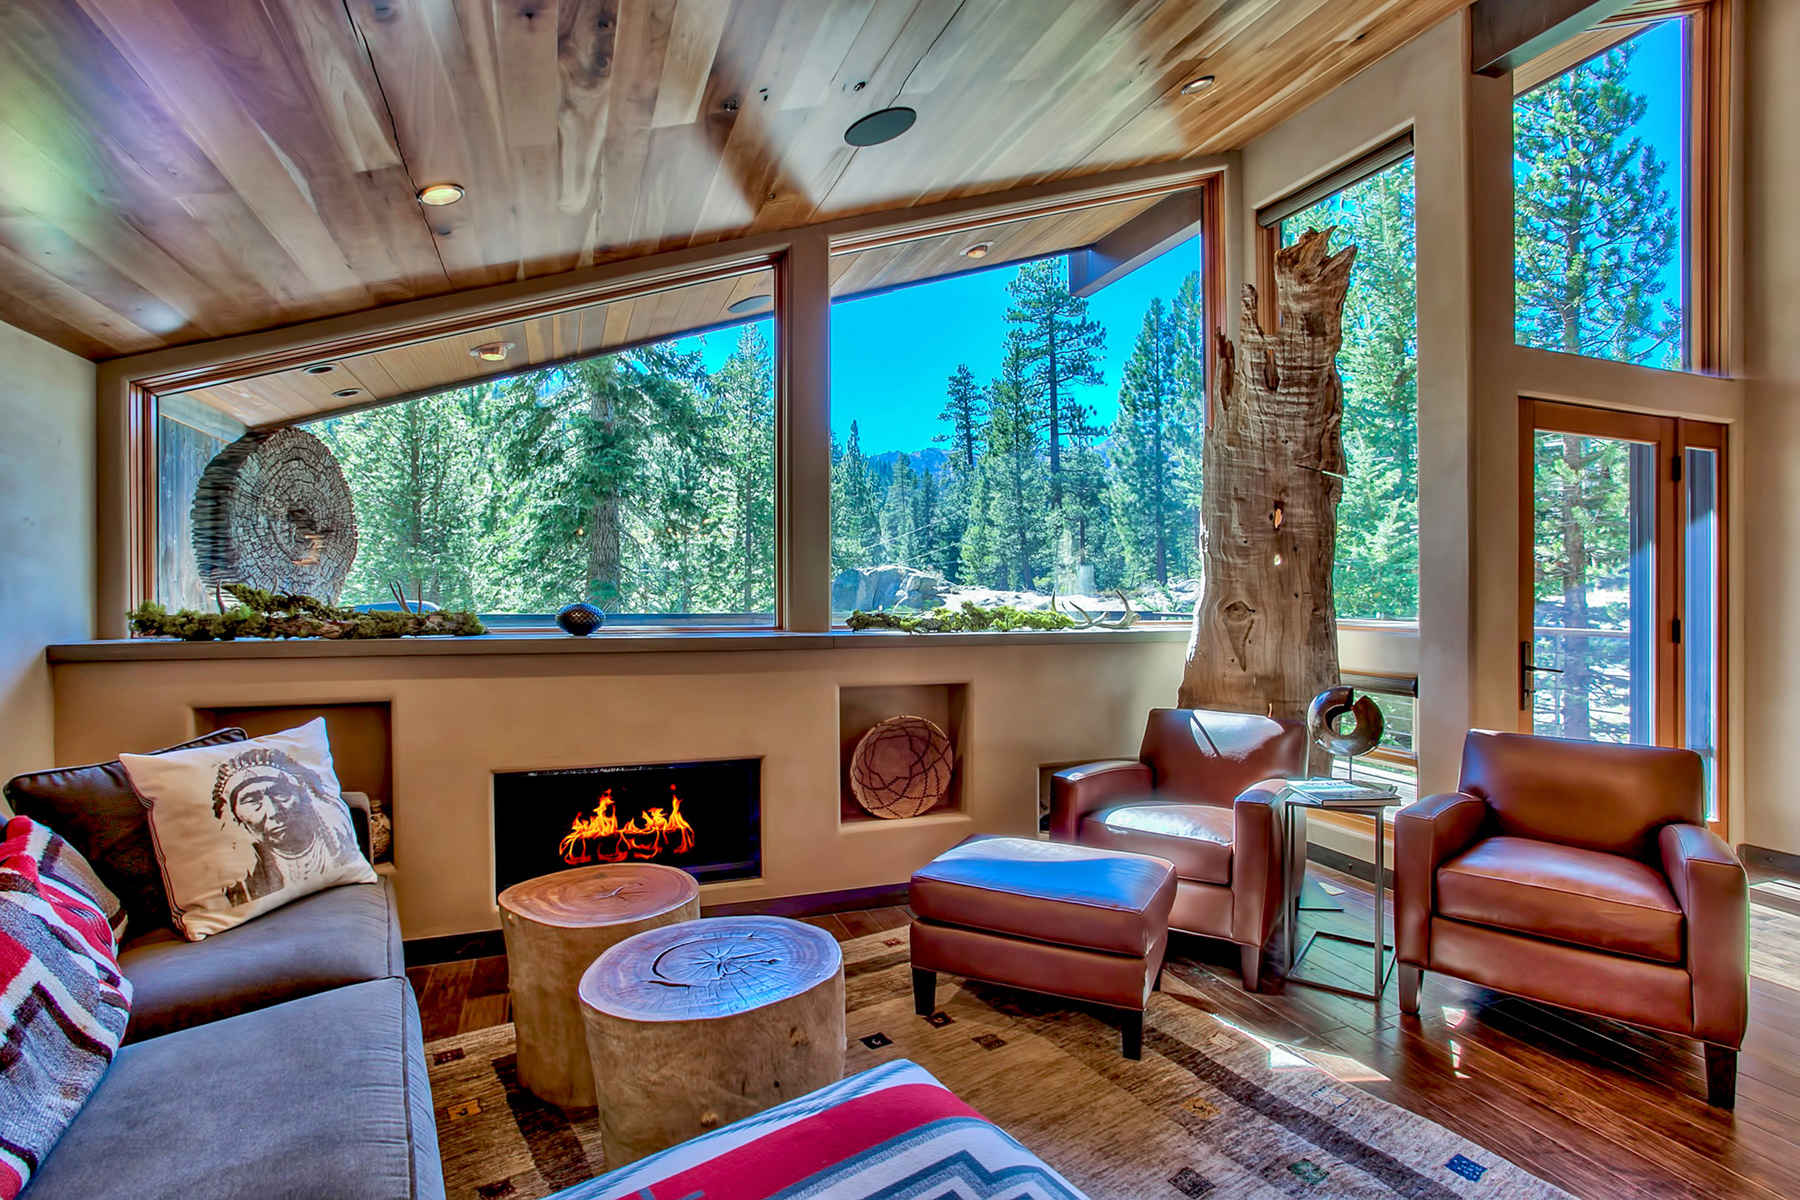 Single Family Home for Active at 1640 Deer Park Drive Alpine Meadows, California 96146 United States